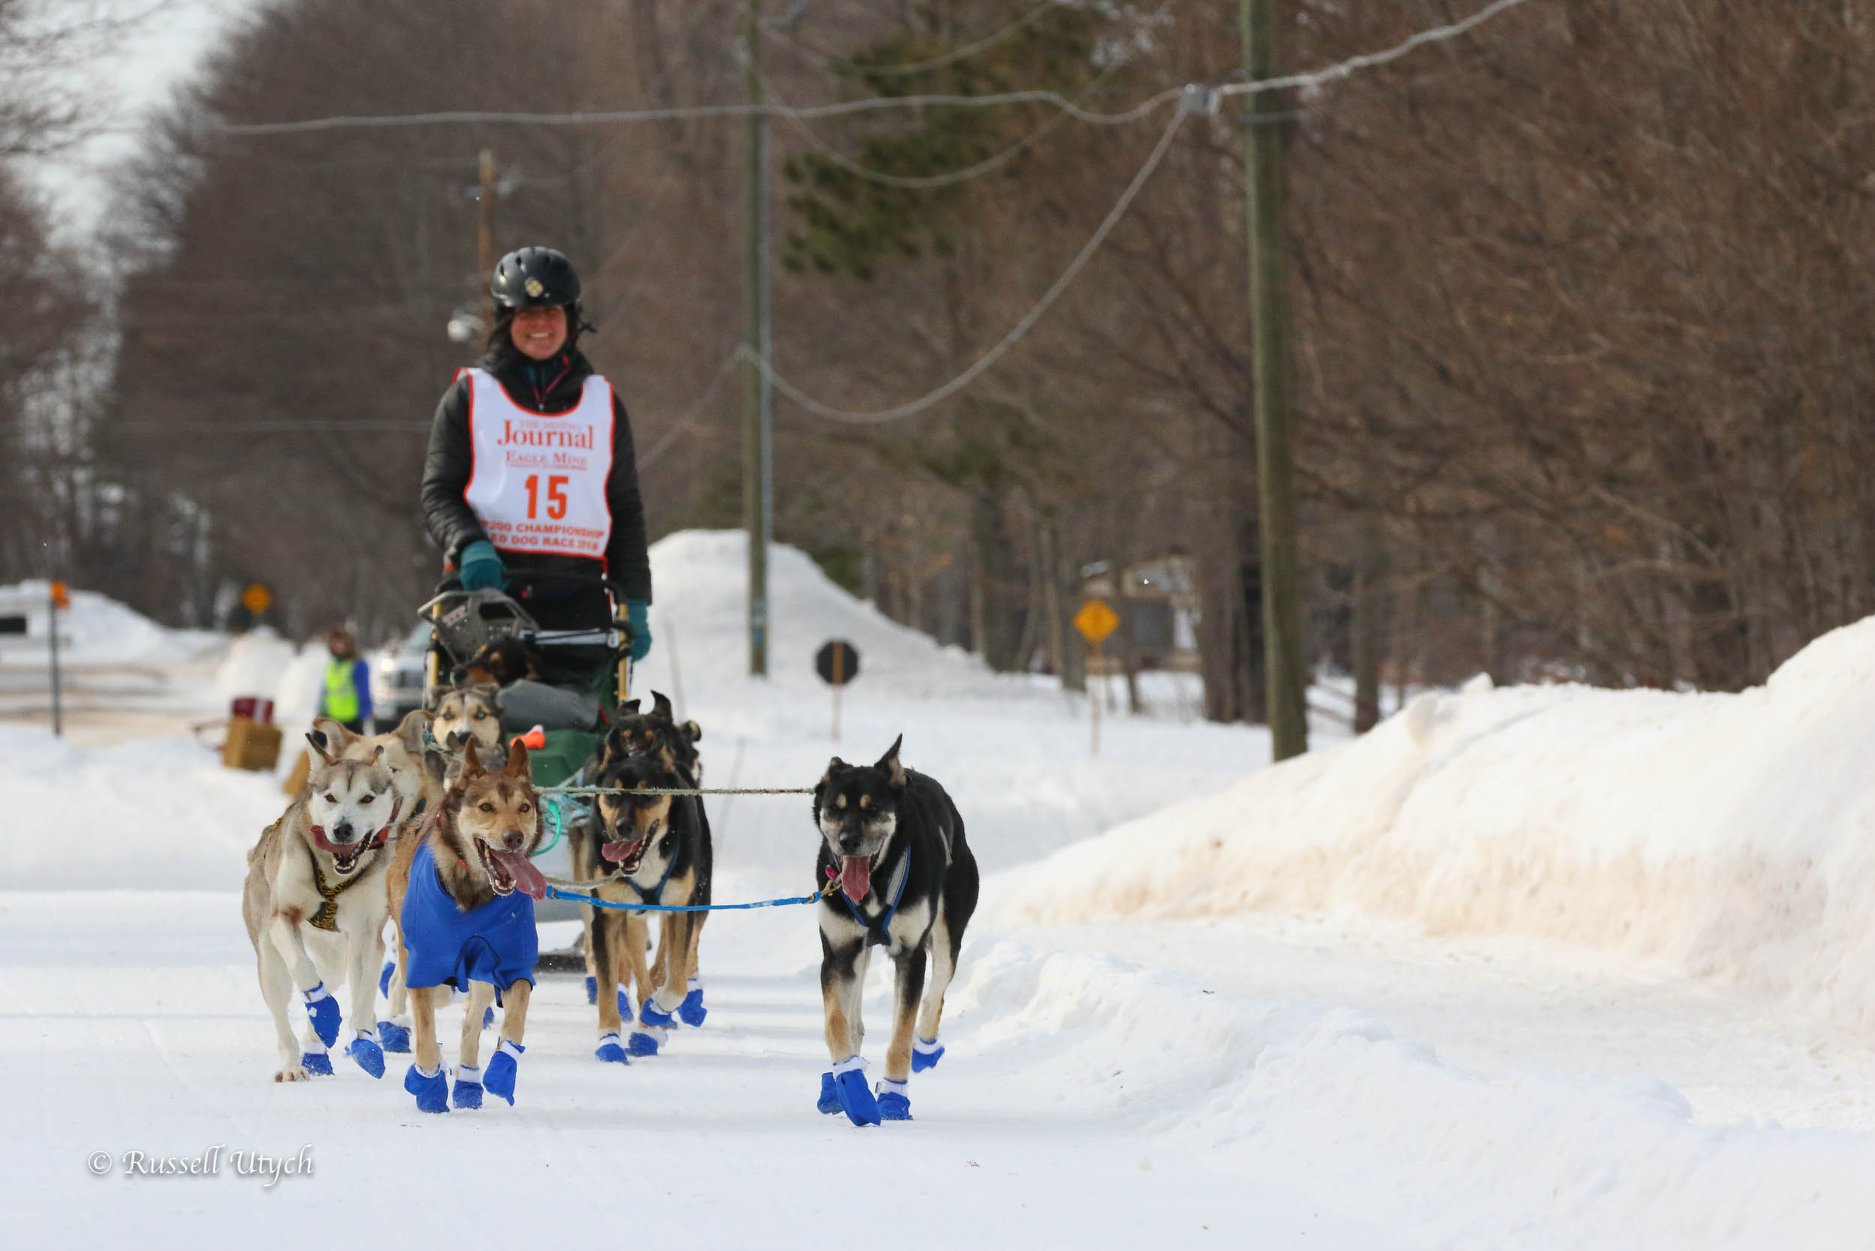 Coming into grand marais, ariel and Wembley in lead. Hyside in the bag.